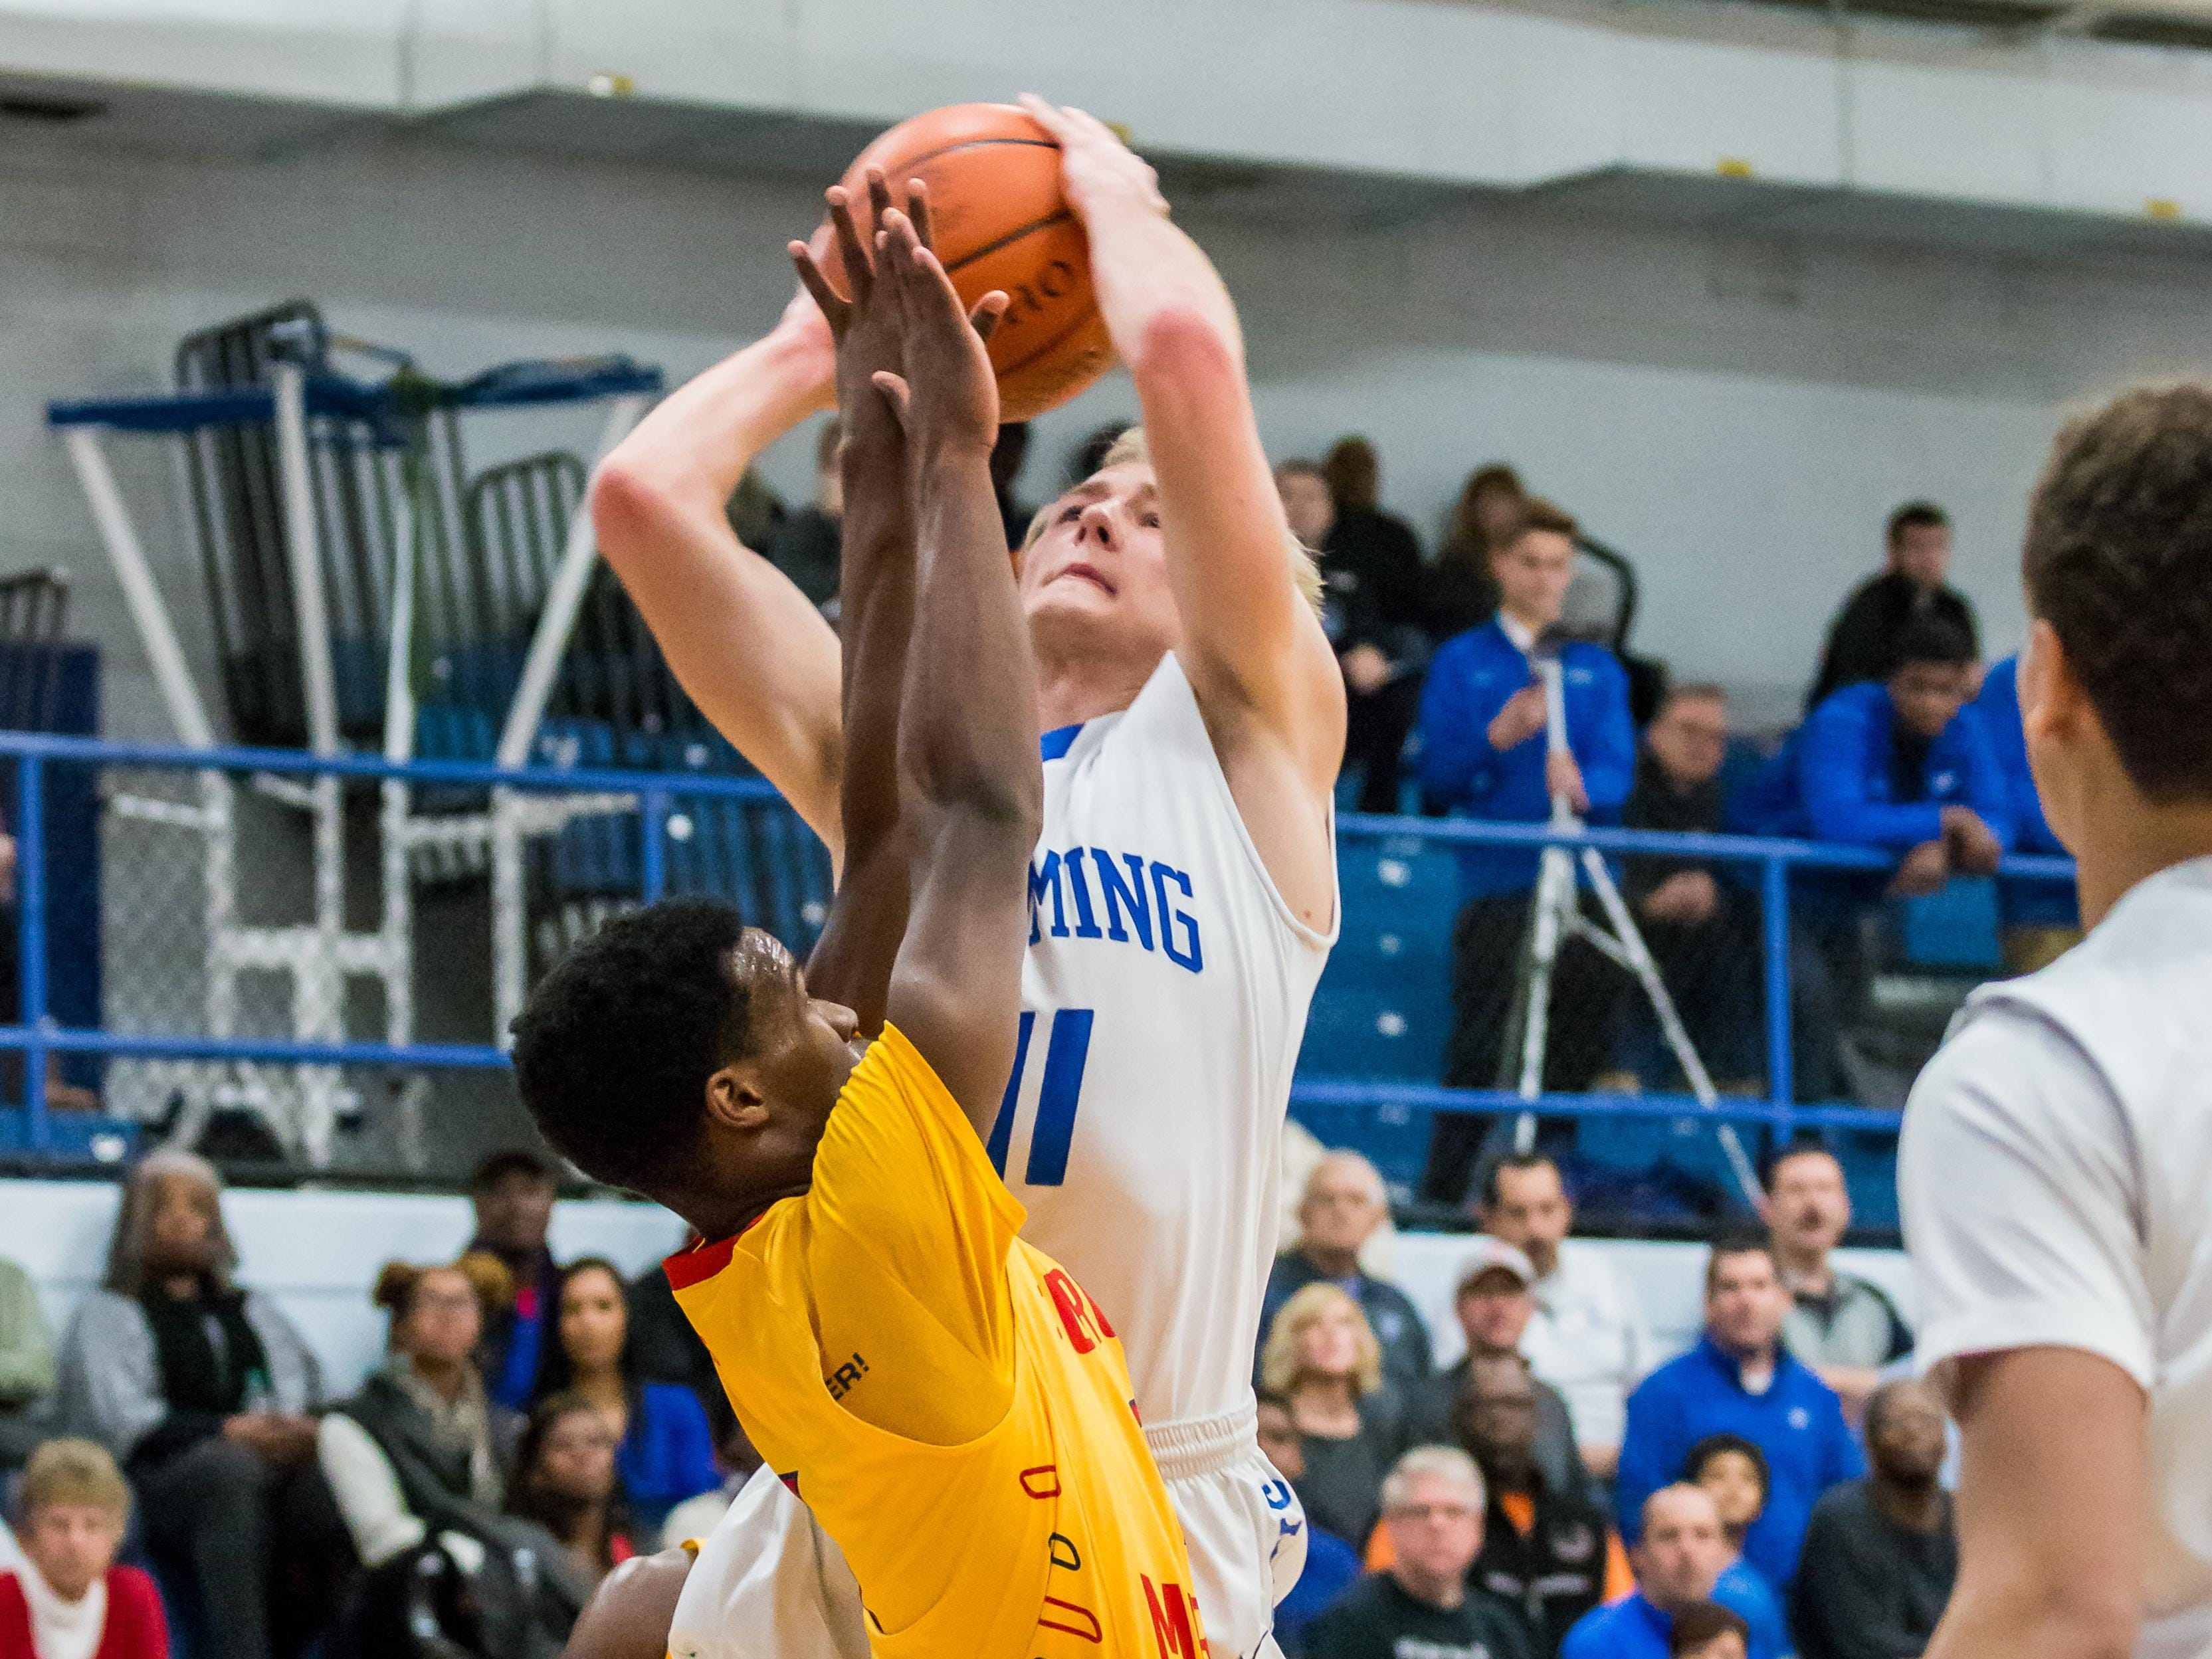 Wyoming's Mason Rogers goes to the rack against Purcell Marian.